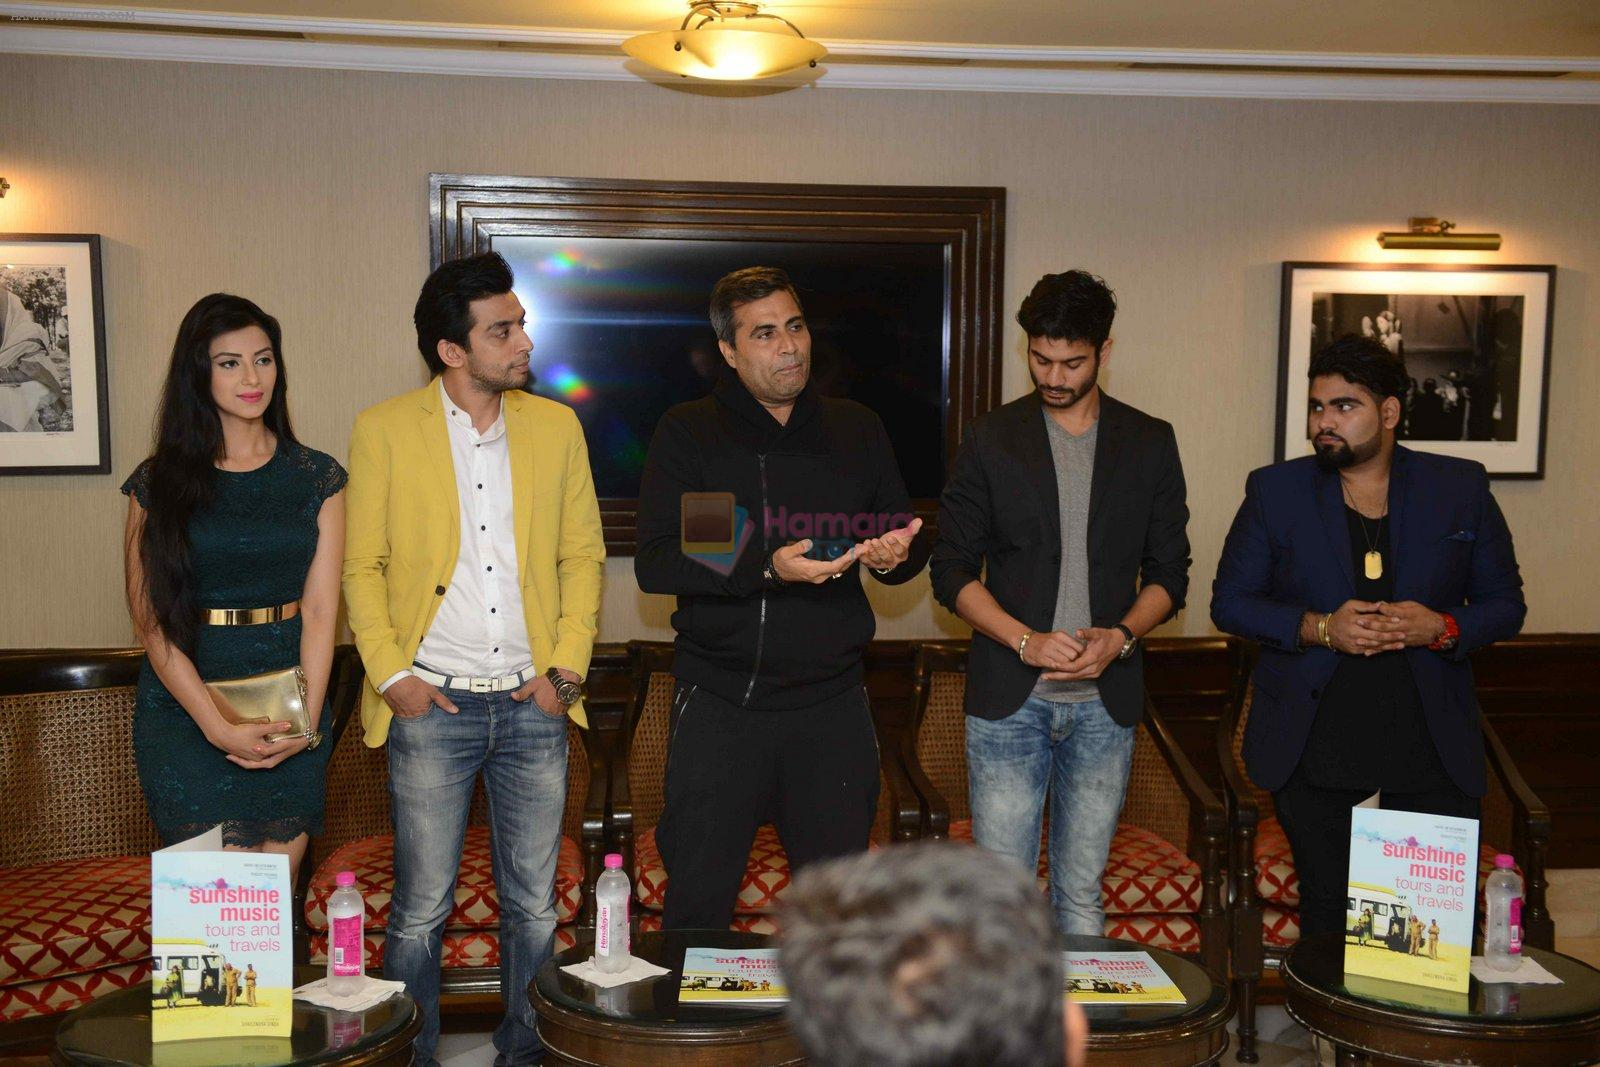 Ashrud Jain, Deepak Kadra, Shailendra Singh, Subha Rajput, Sunny Kaushal at Sunshine music travel press meet on 24th Aug 2016